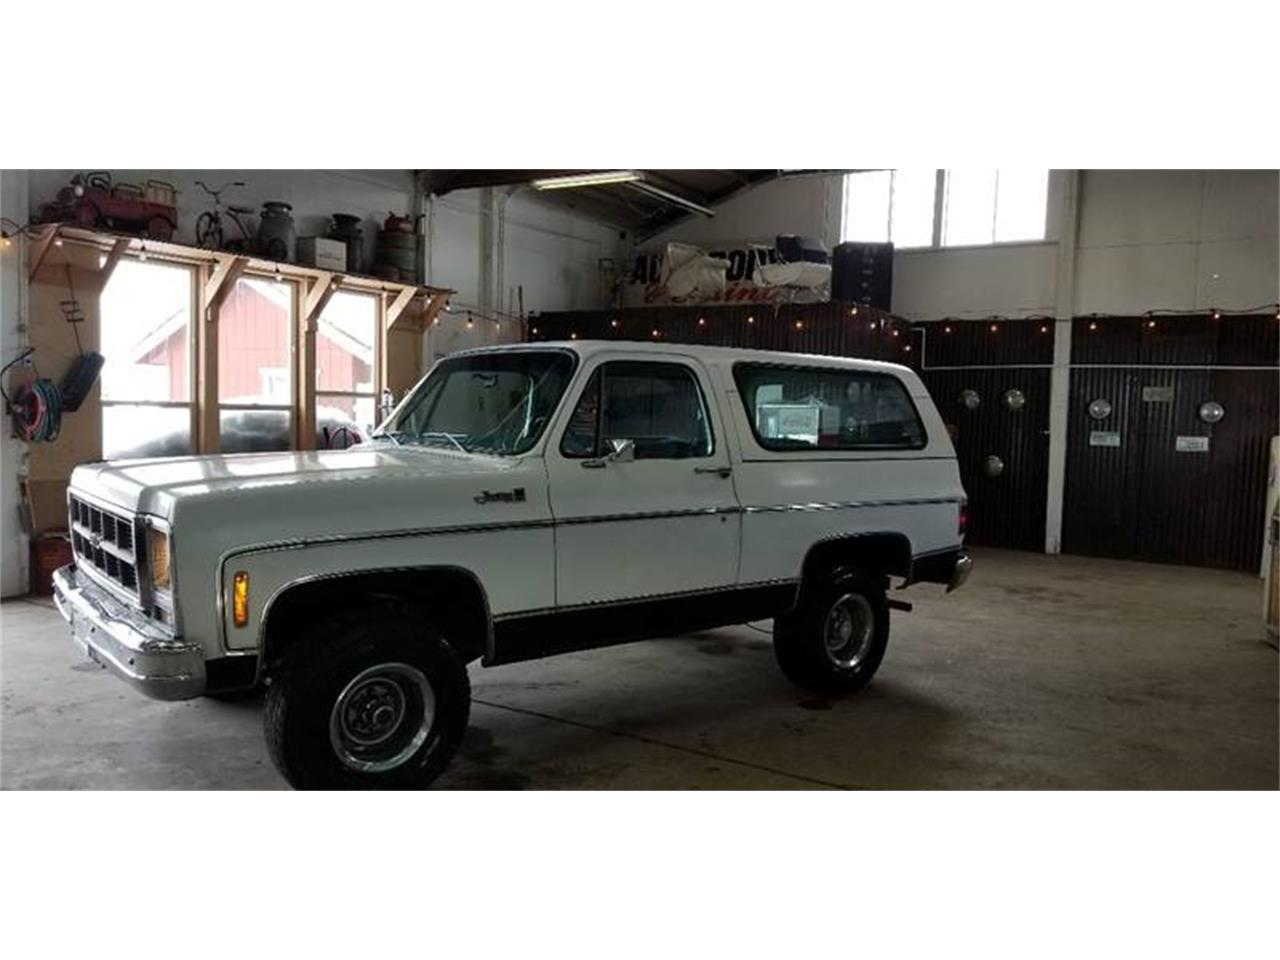 Large Picture of 1979 GMC Jimmy - $12,500.00 Offered by Cool Classic Rides LLC - QTVF